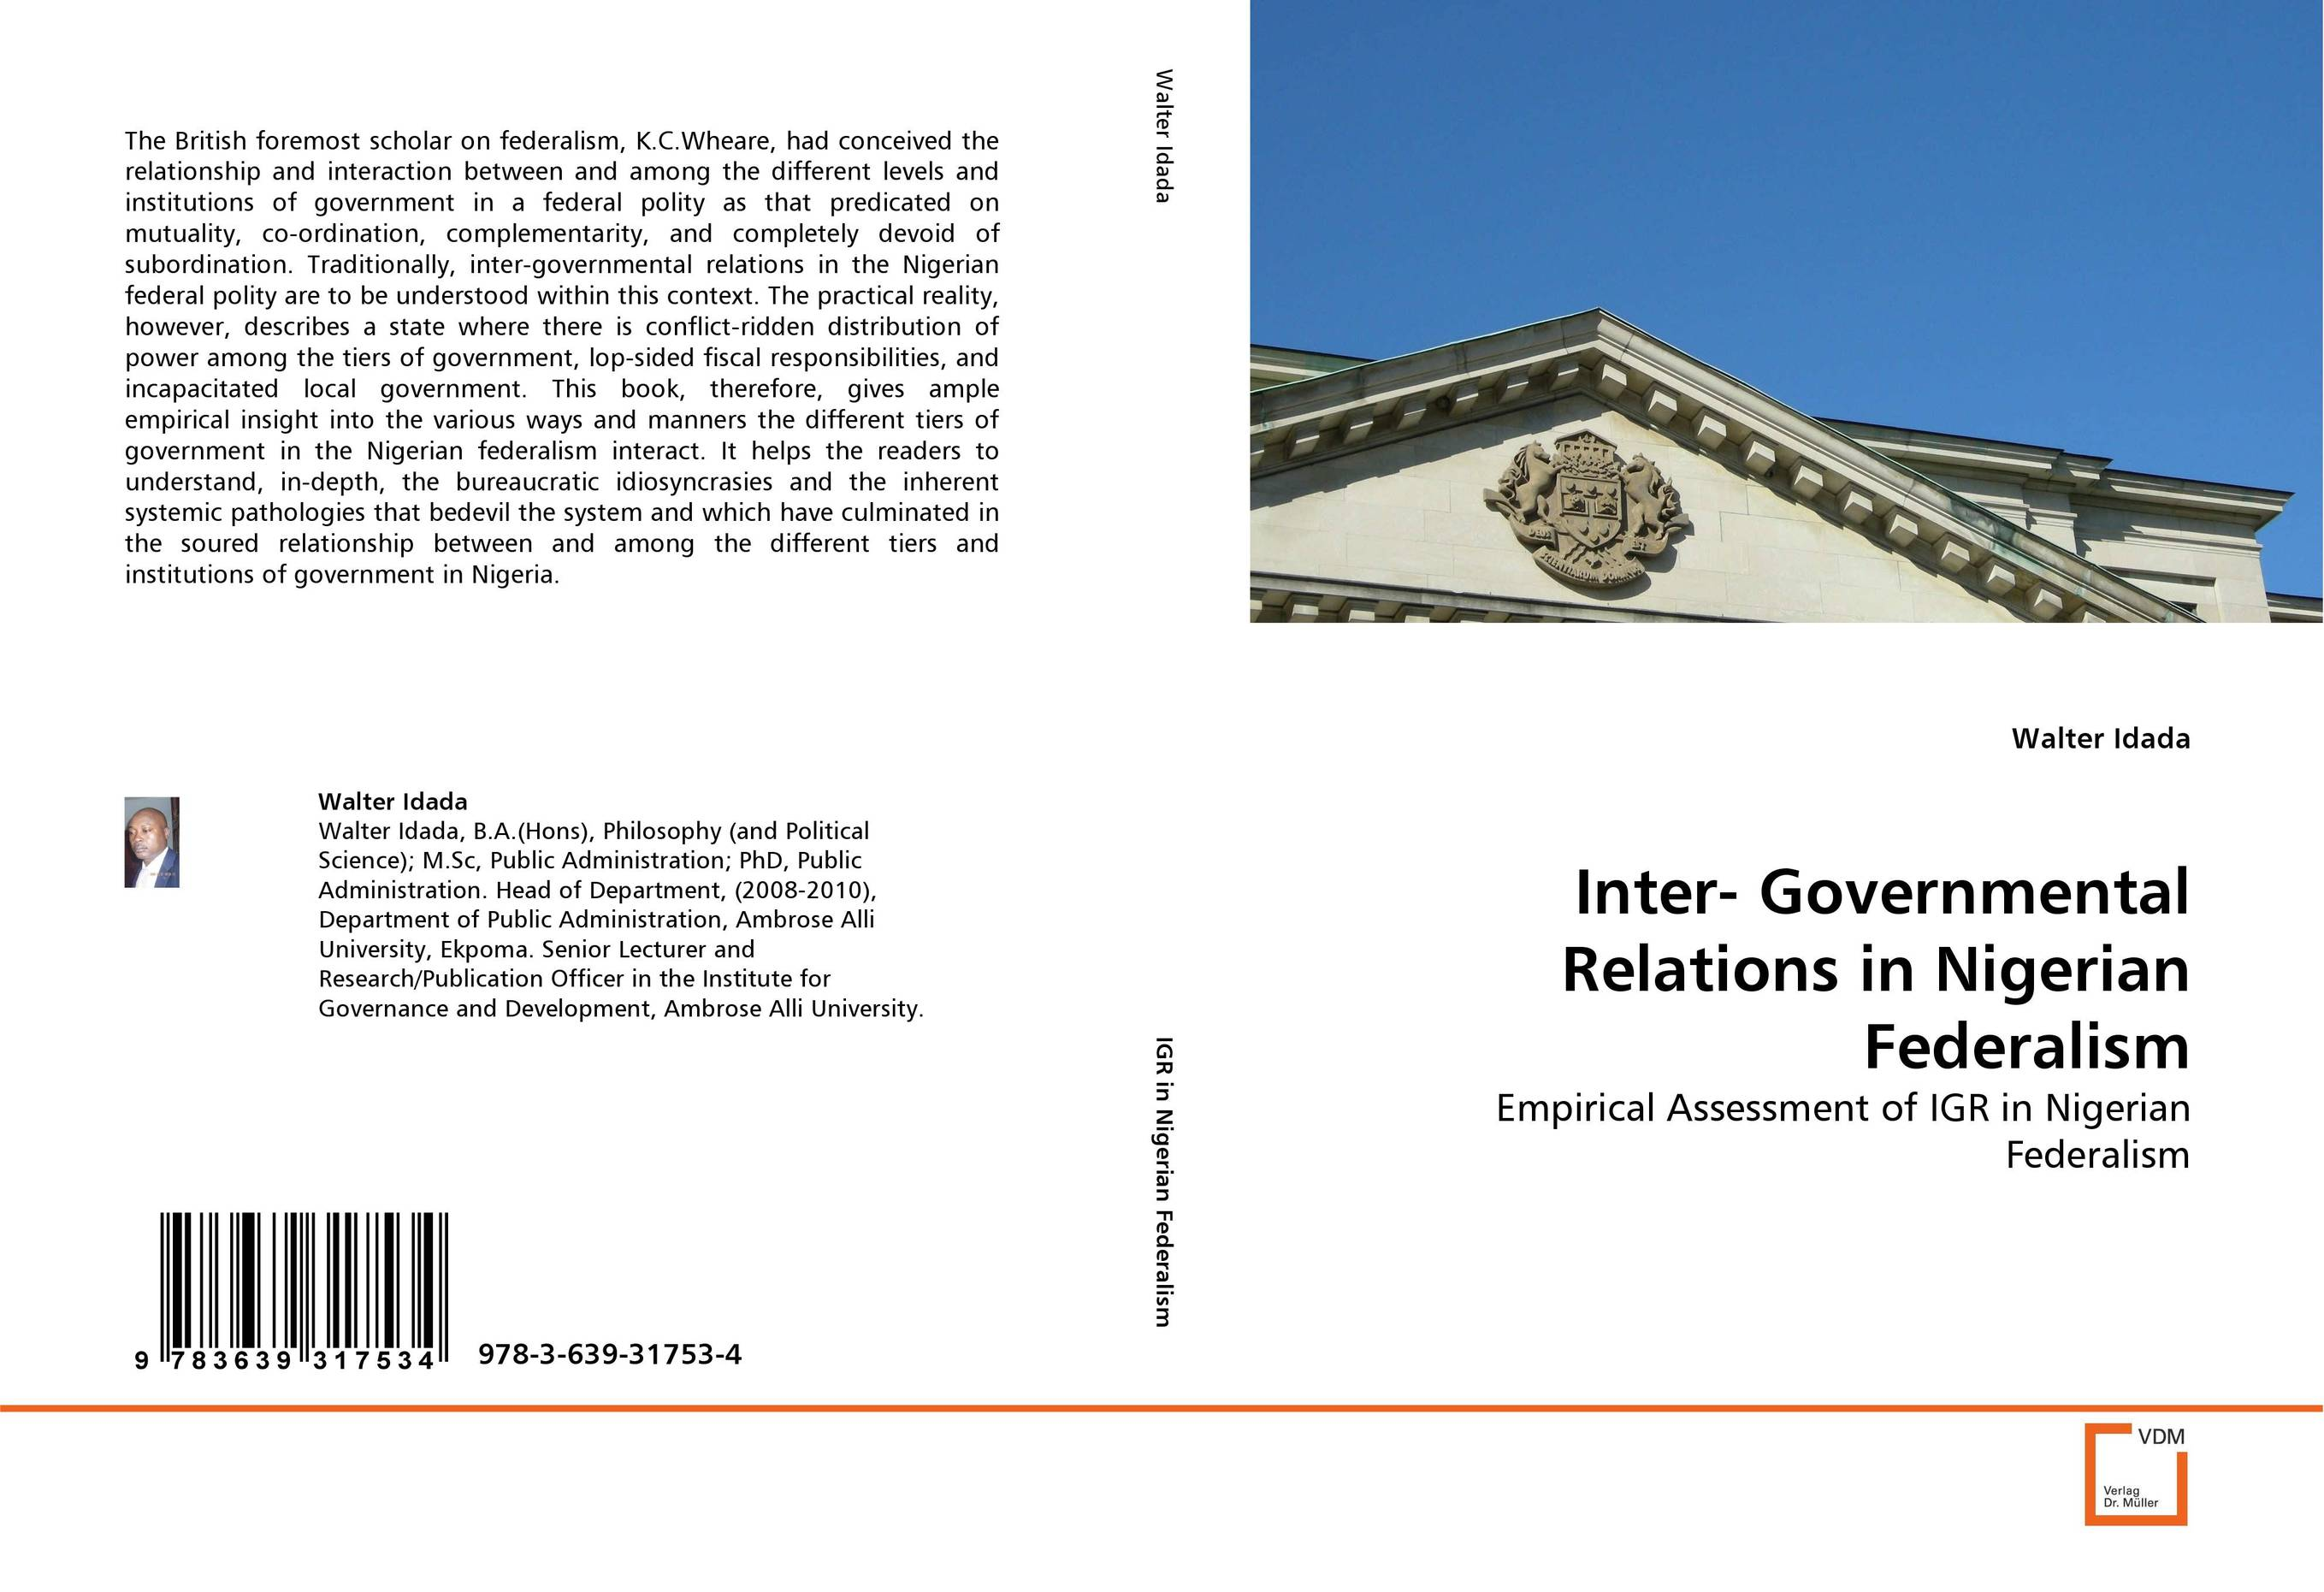 Inter- Governmental Relations in Nigerian Federalism